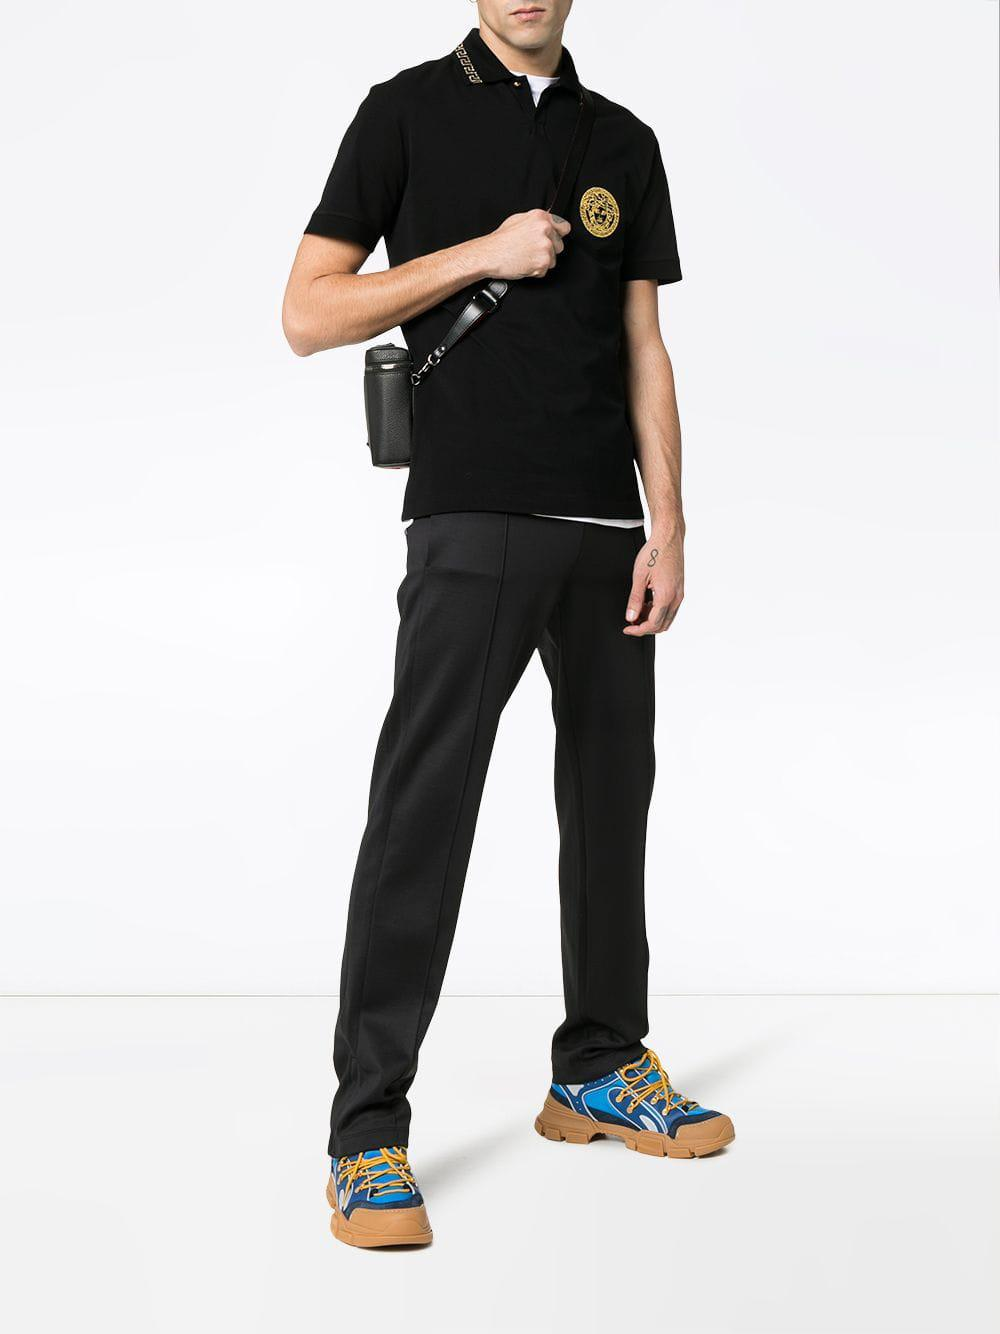 bcca35c8 Lyst - Versace Medusa Embroidered Cotton Polo Shirt in Black for Men - Save  20%